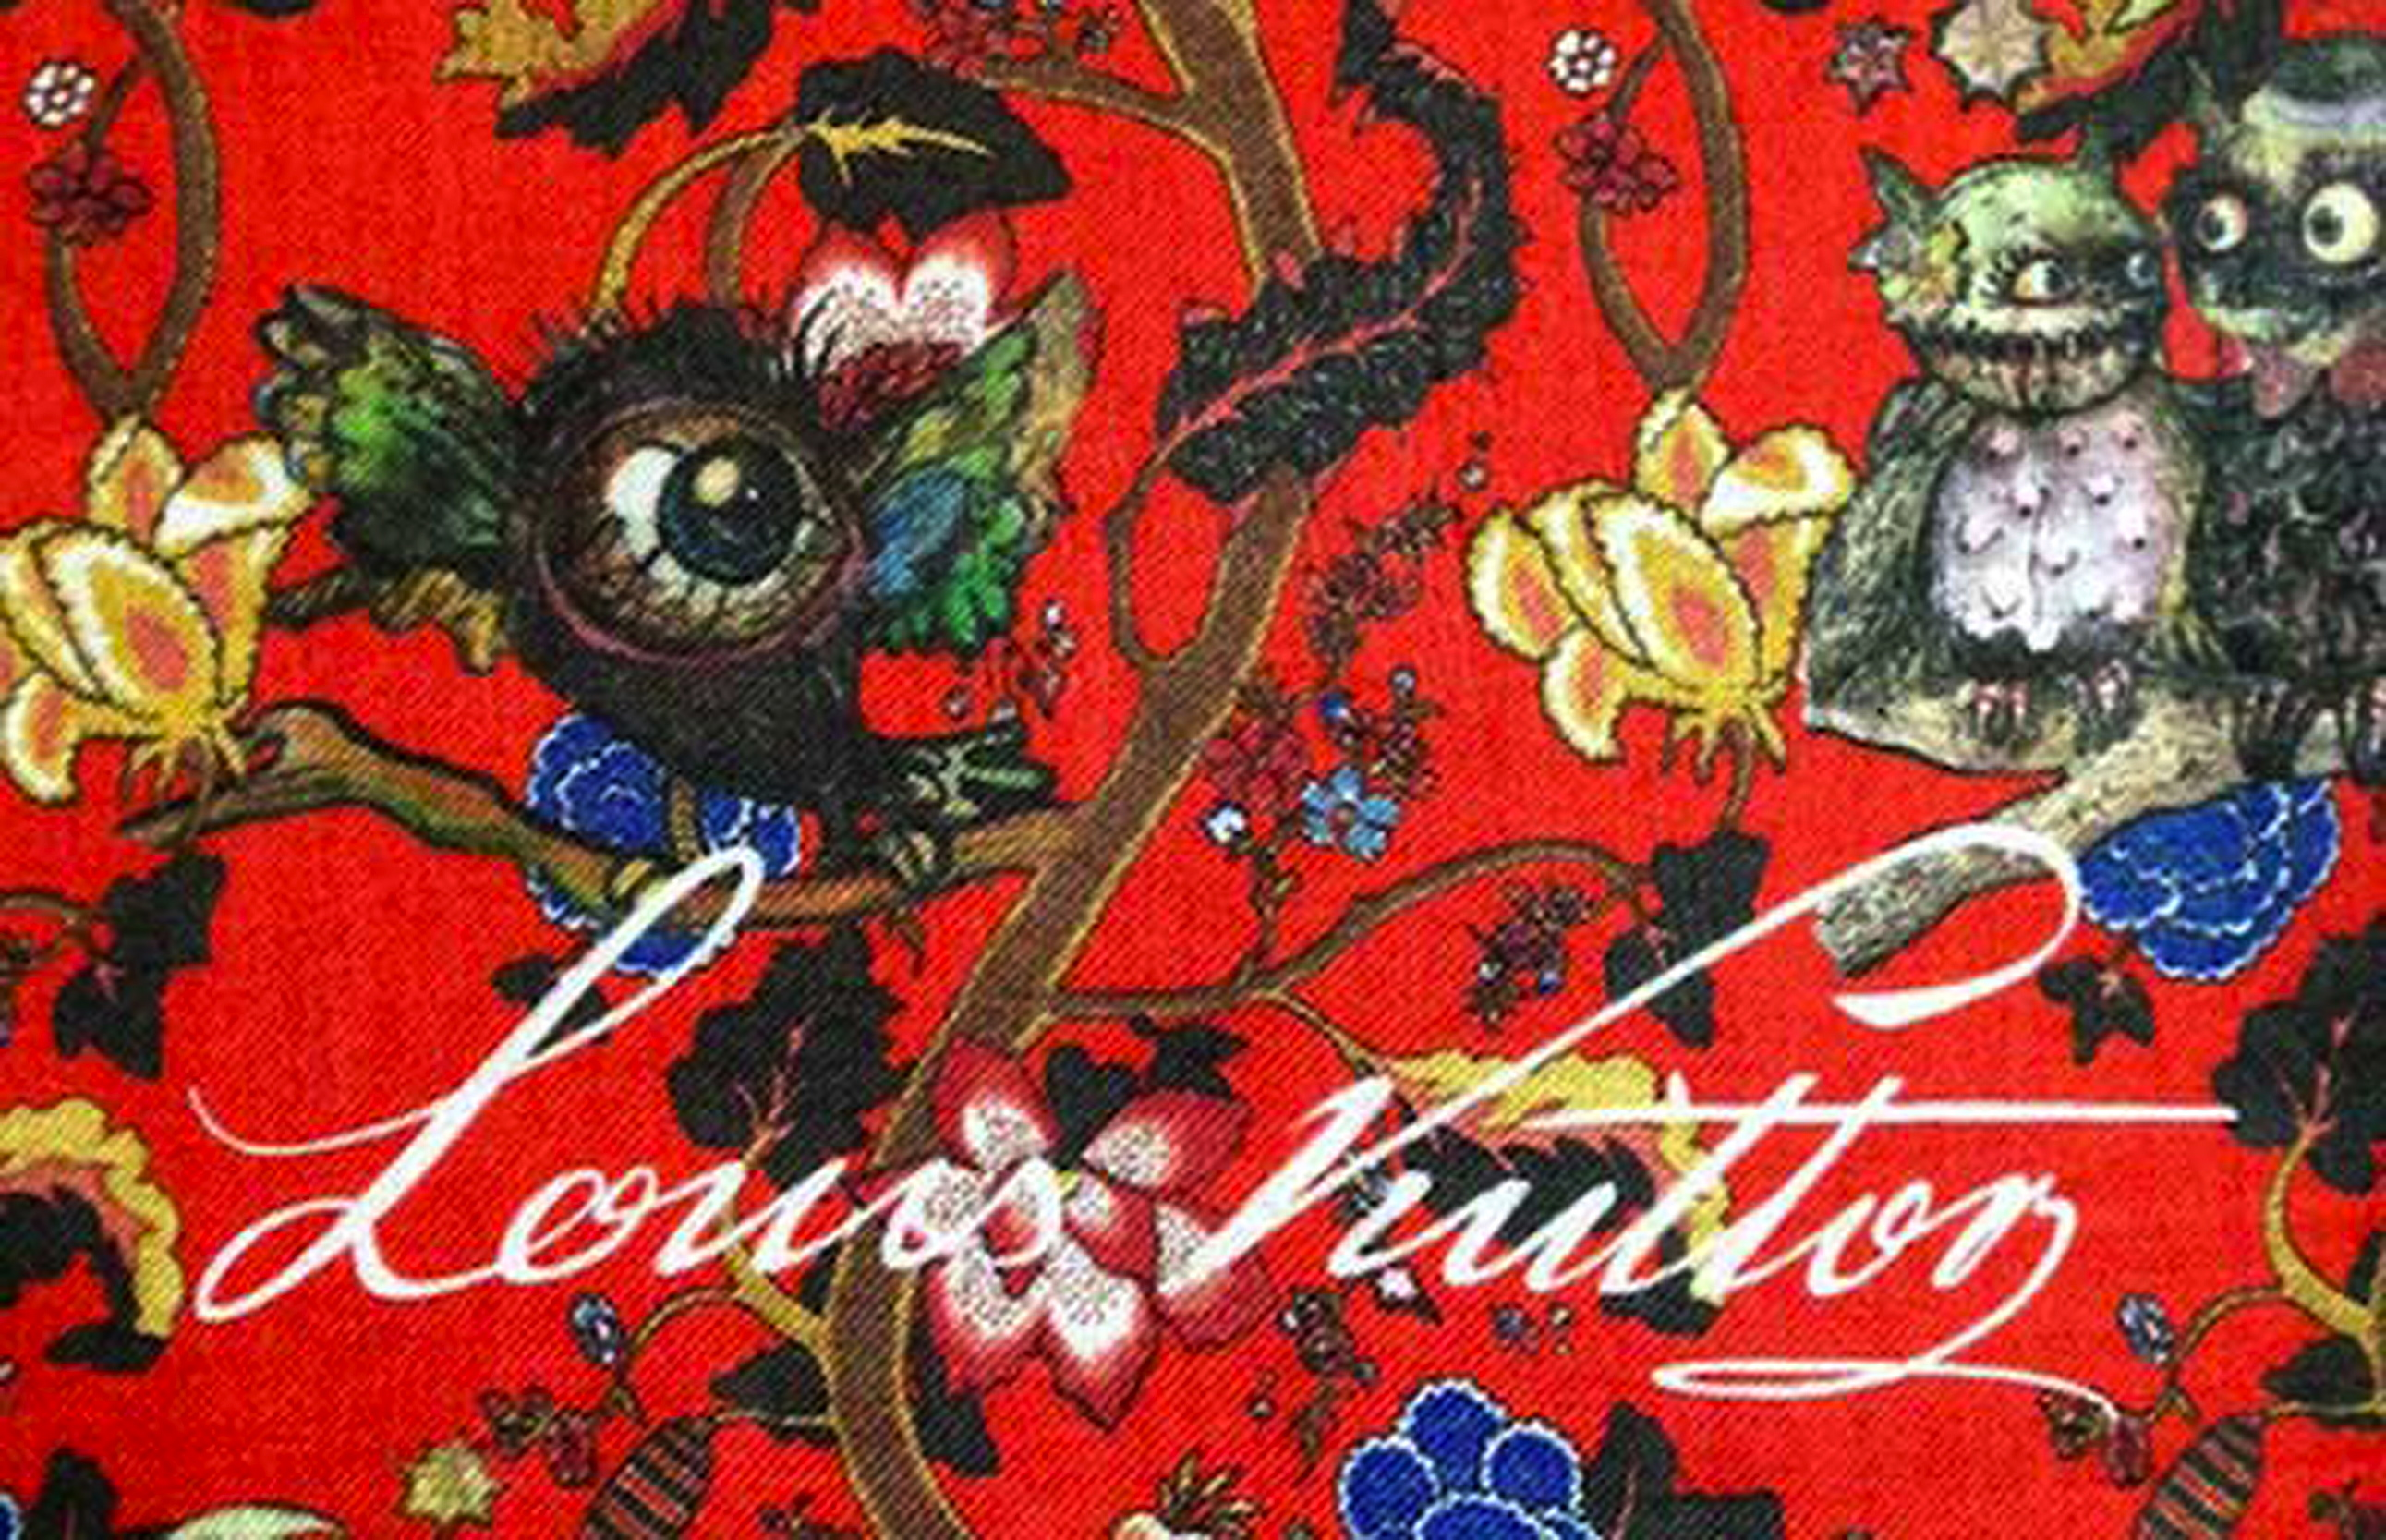 LOUIS VUITTON CHAPMAN BROTHERS PRINT1 LOUIS VUITTON MENSWEAR FALL 2013 PARIS